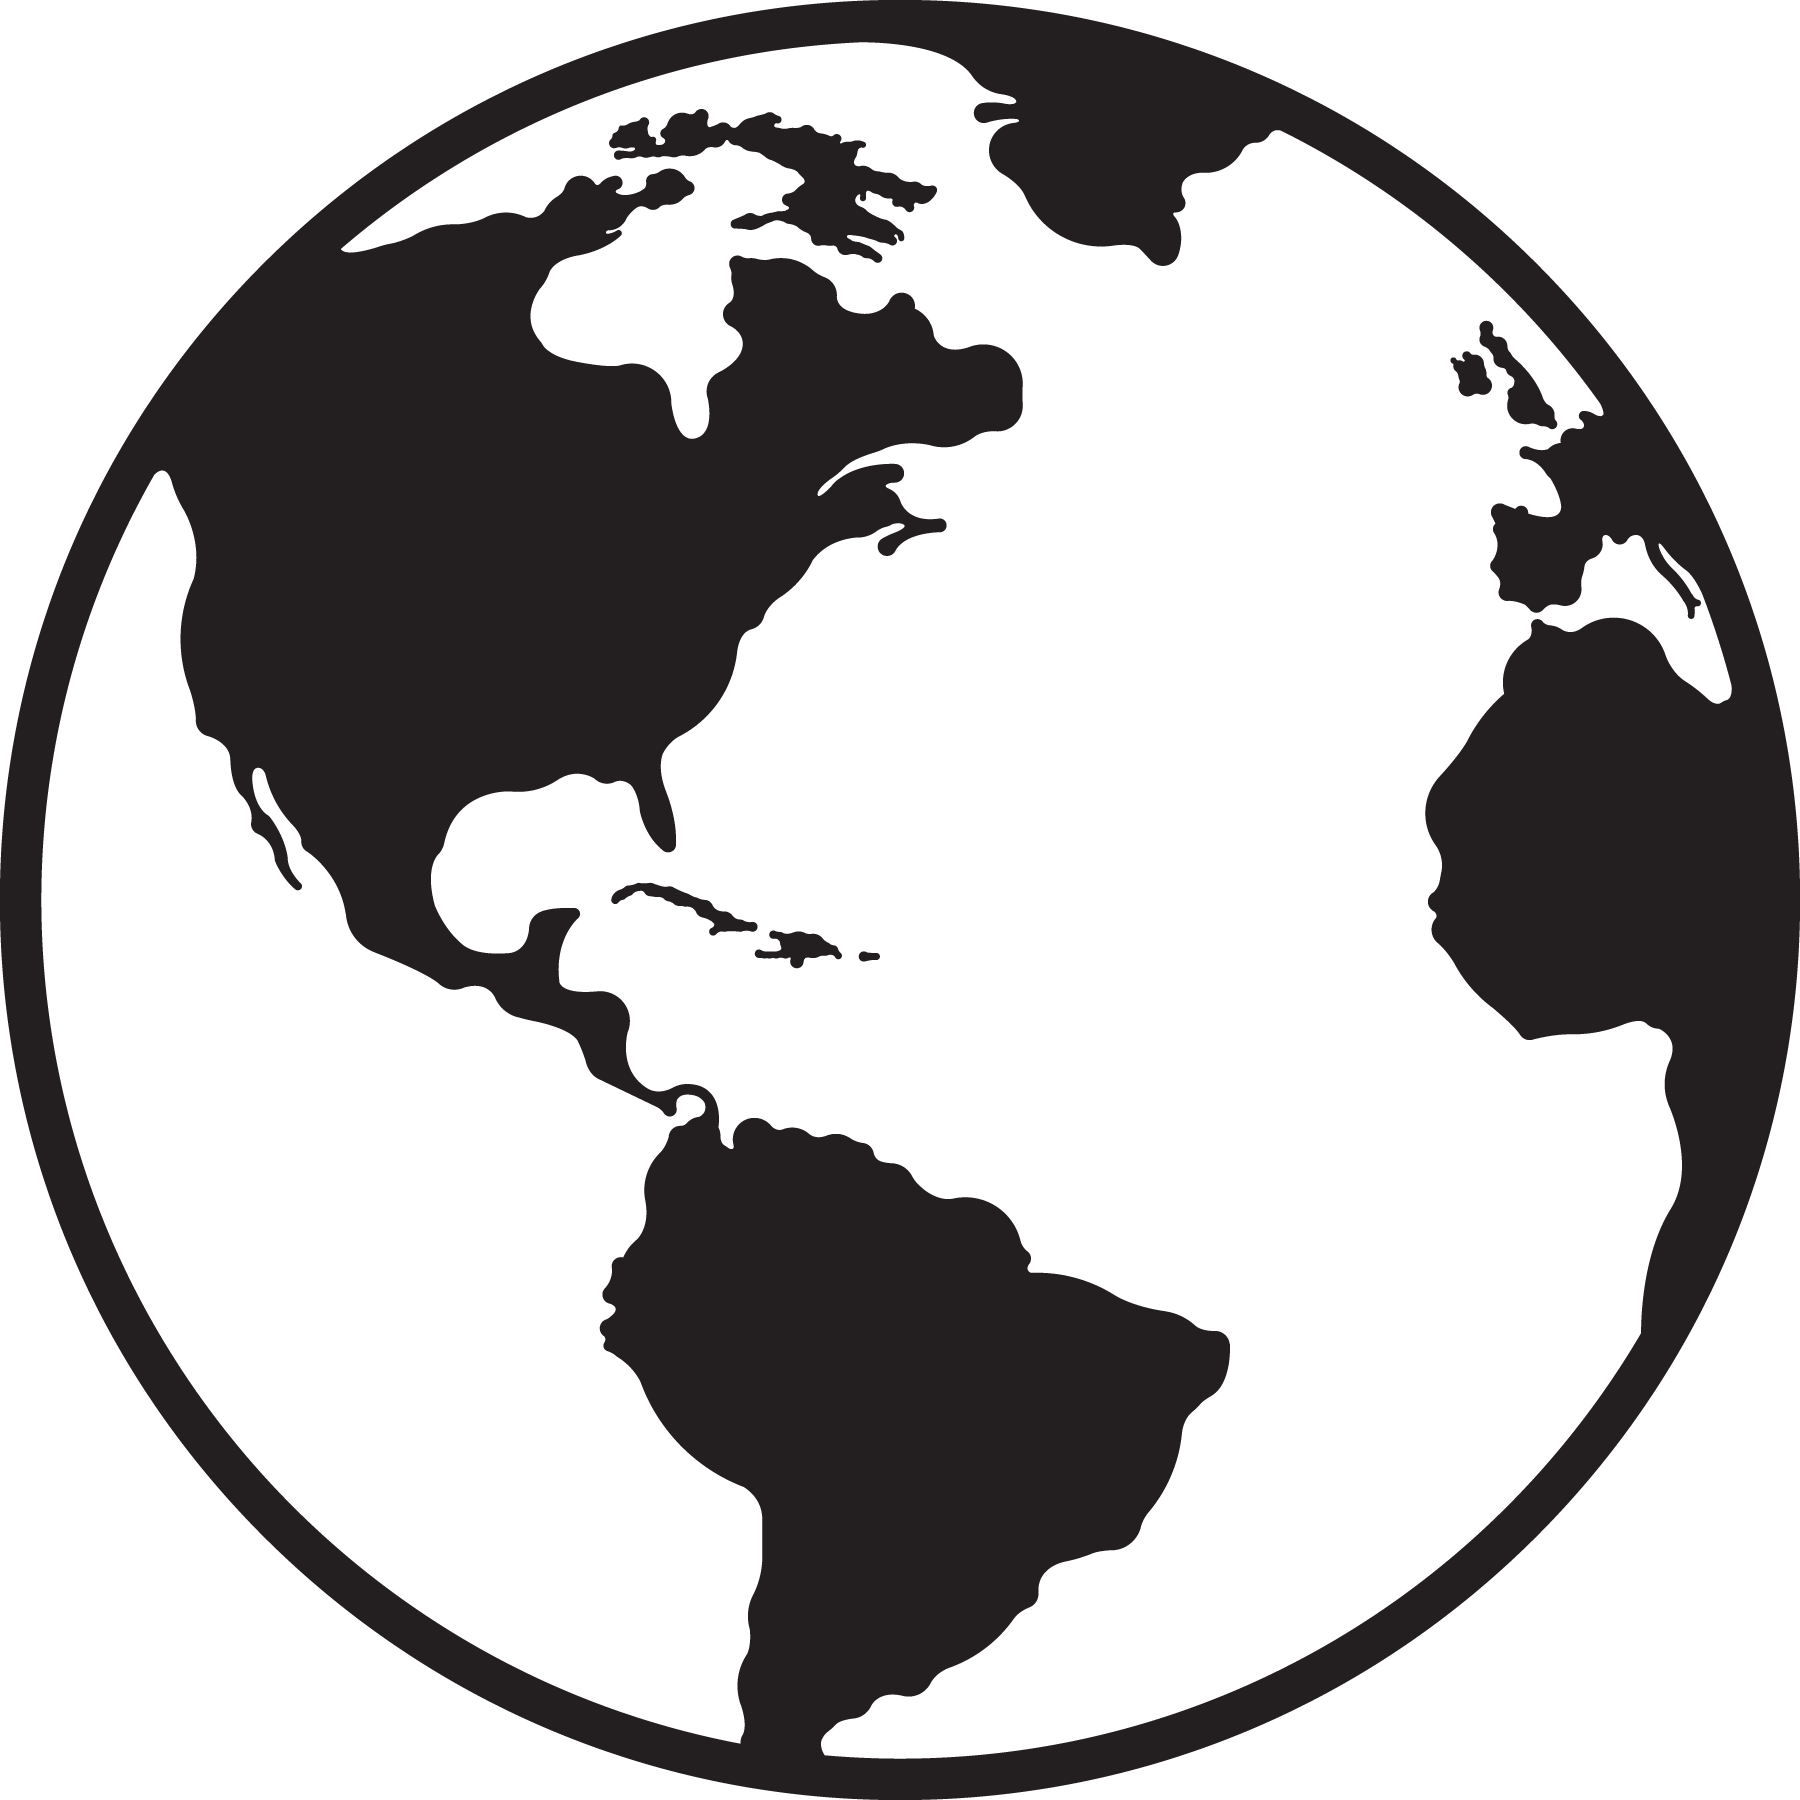 https://0901.nccdn.net/4_2/000/000/008/486/best-globe-black-and-white-vector-image-1800x1800.png